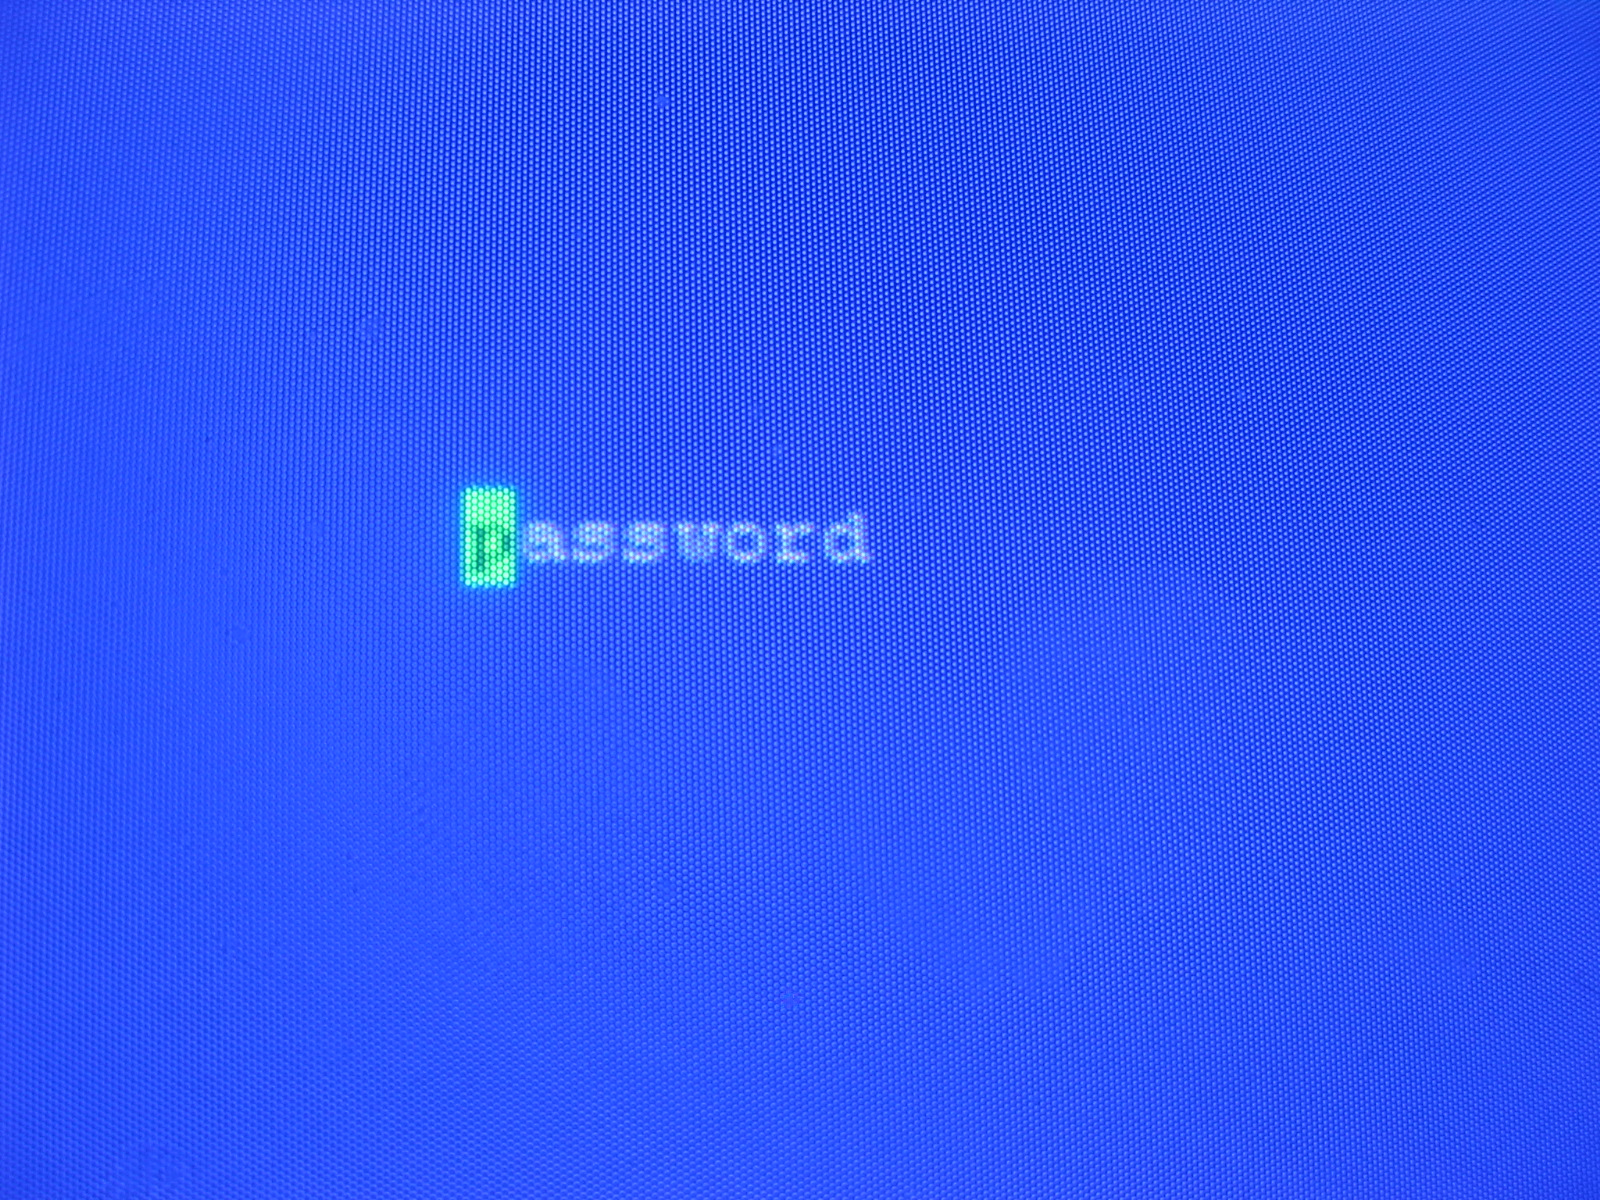 Password on a CRT monitor